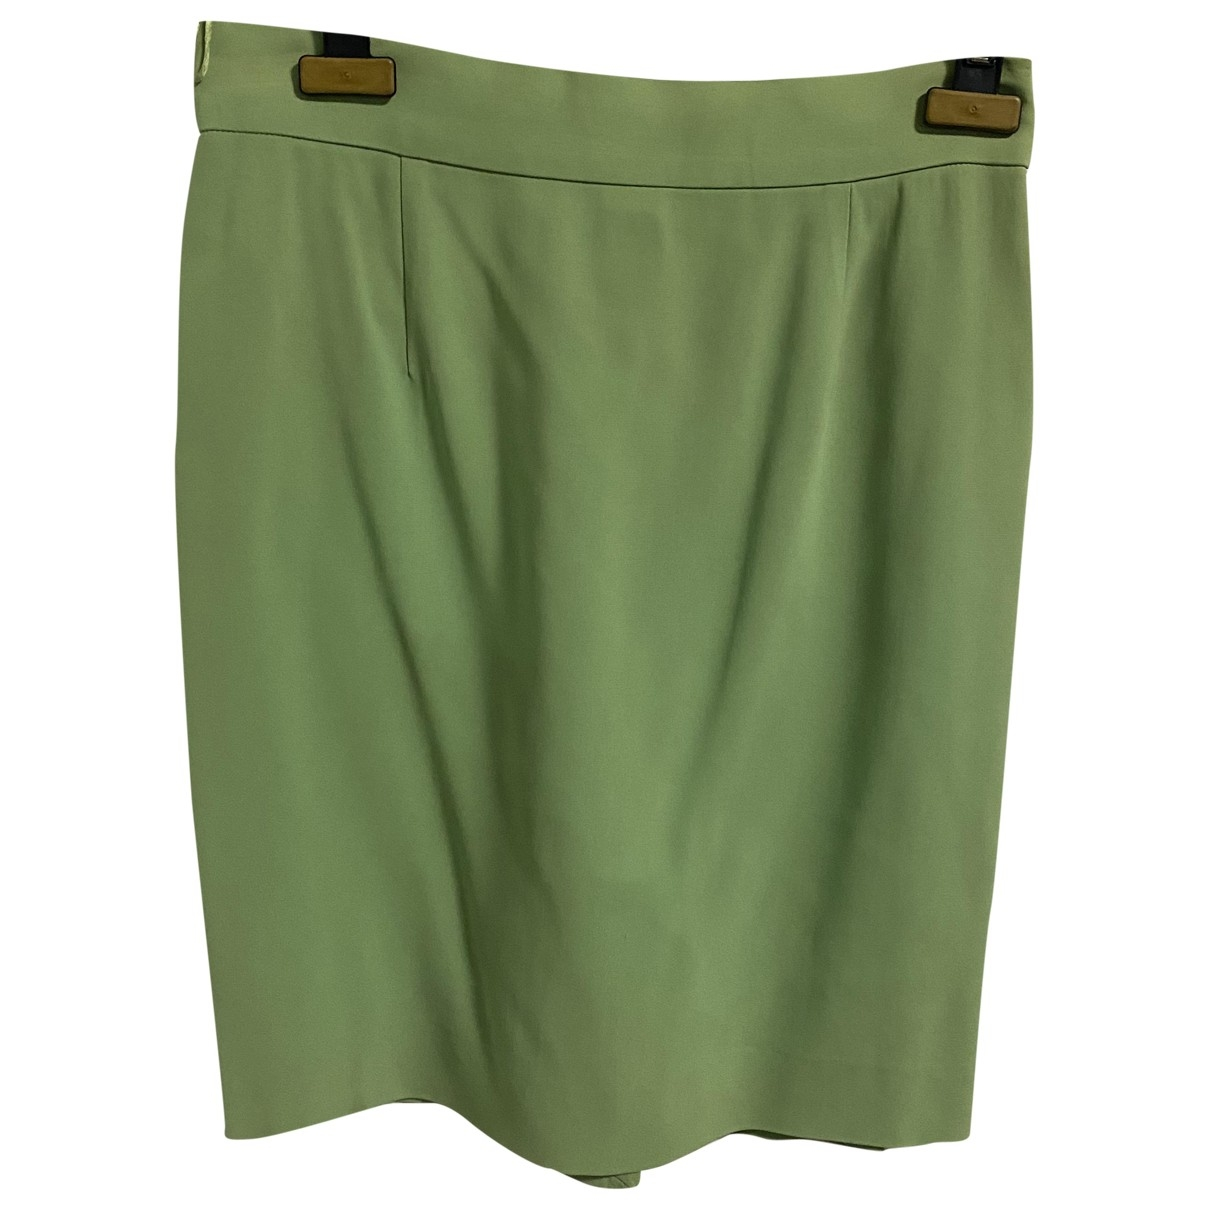 Moschino \N Green skirt for Women 44 IT